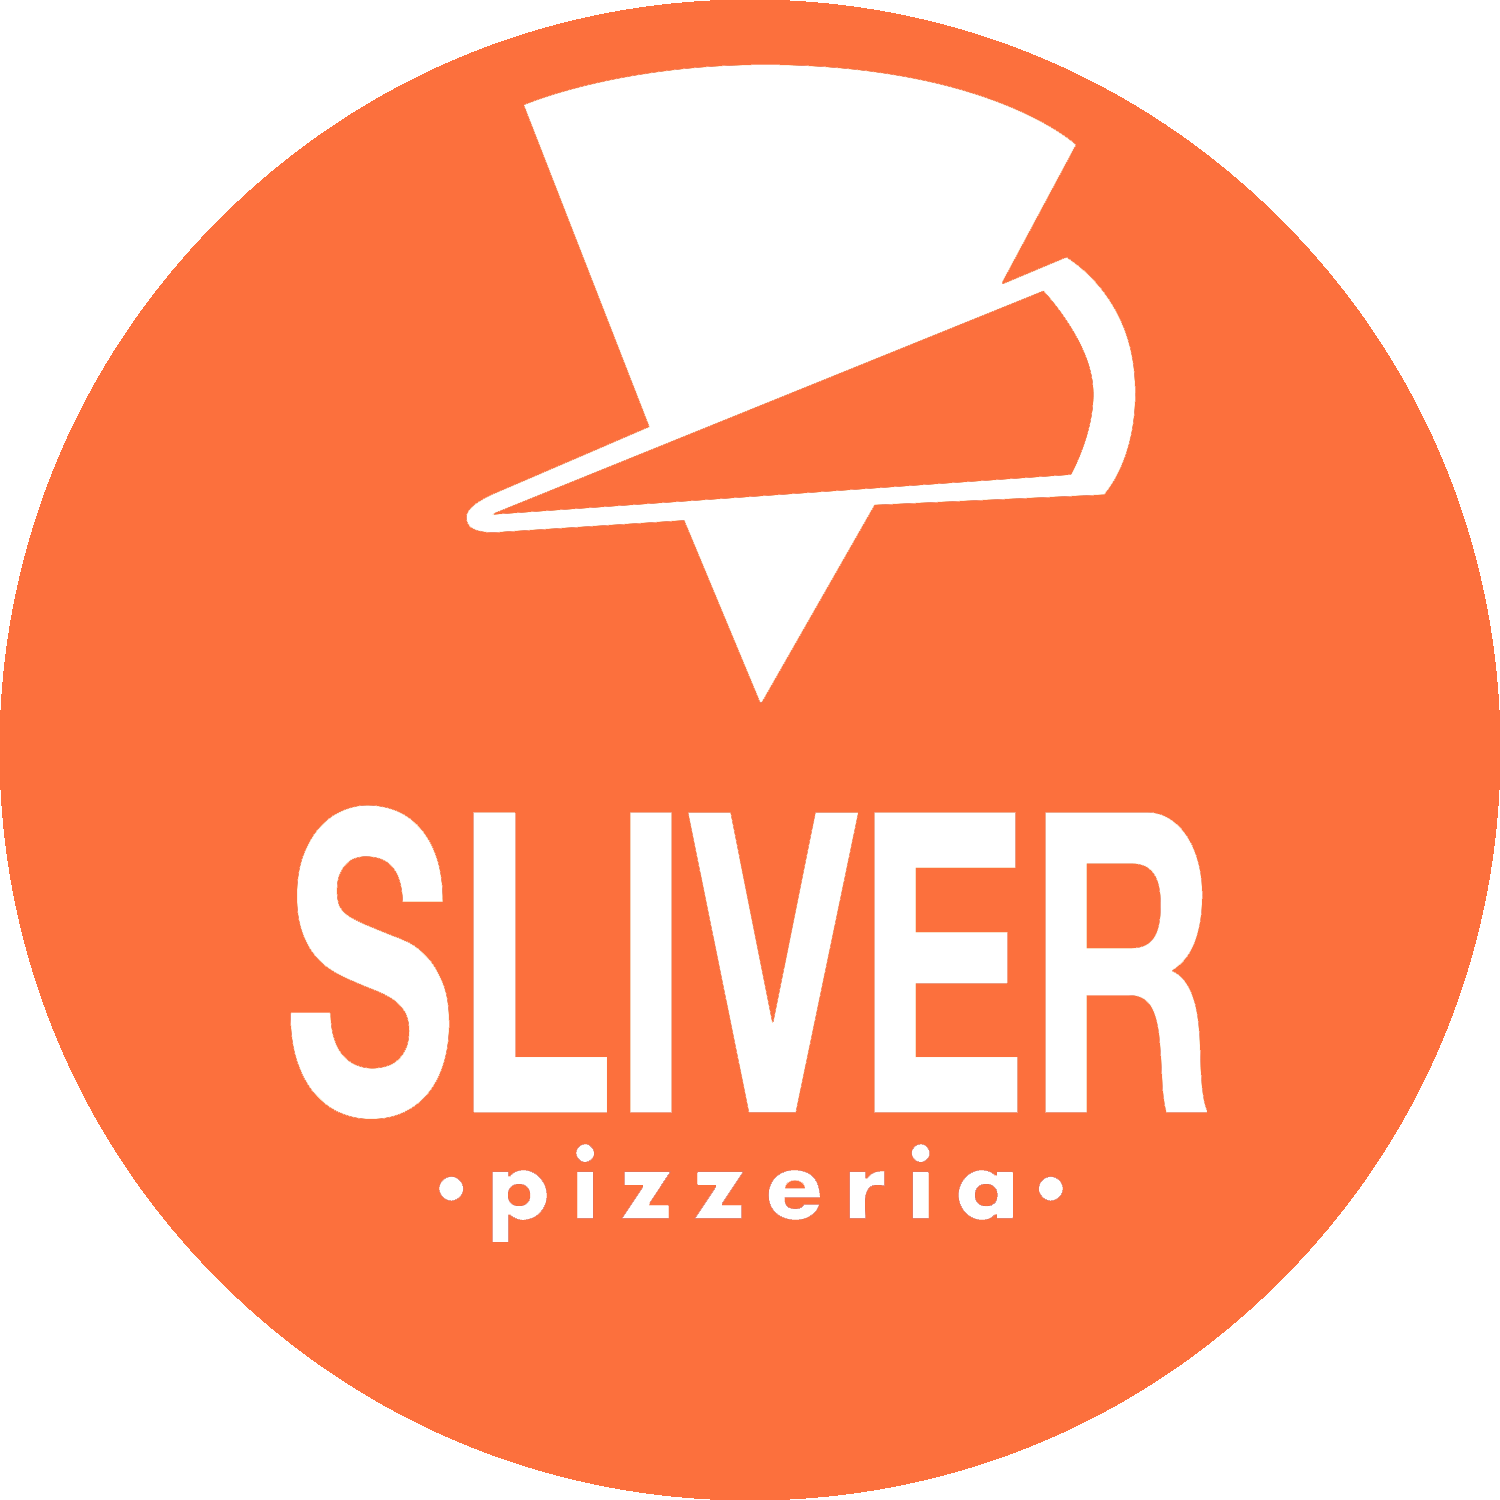 Sliver Pizzeria Check out our complete menu of pizzas, salads, soda, beer, wine, desserts, and our awesome sauces. sliver pizzeria